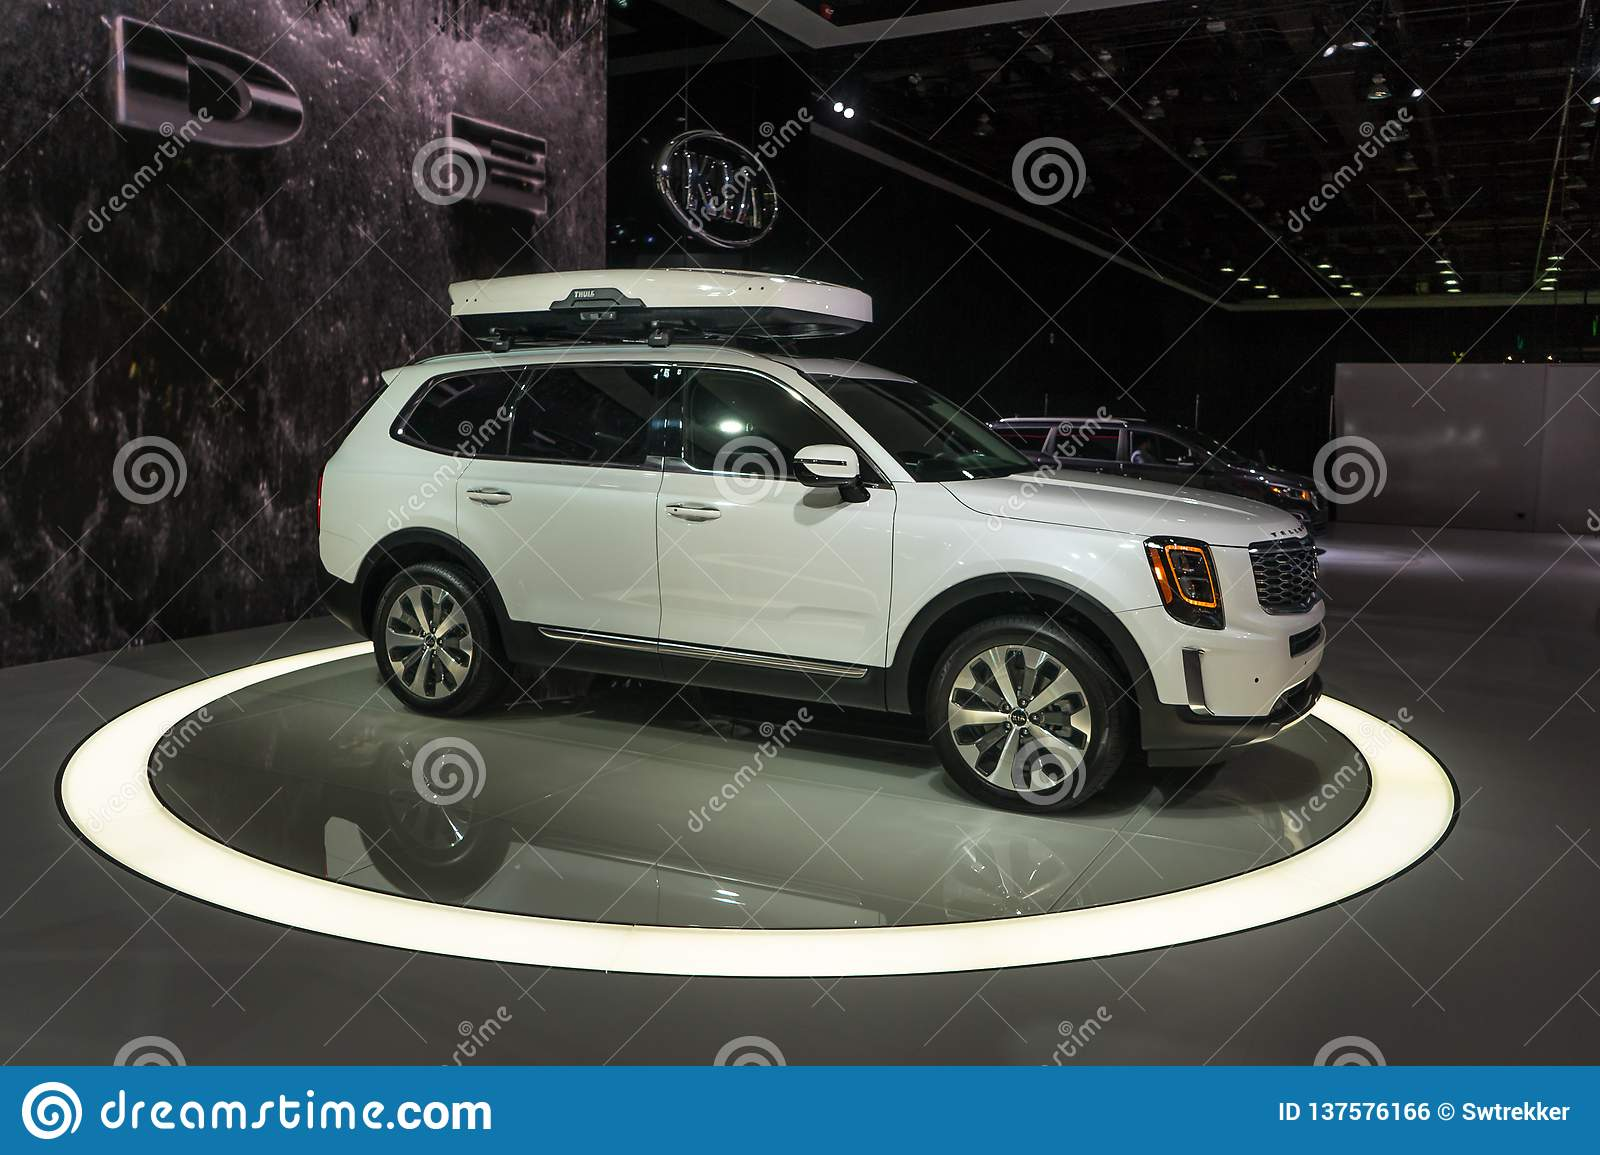 2020 Kia Telluride Editorial Photo Image Of 2020 Rack 137576166